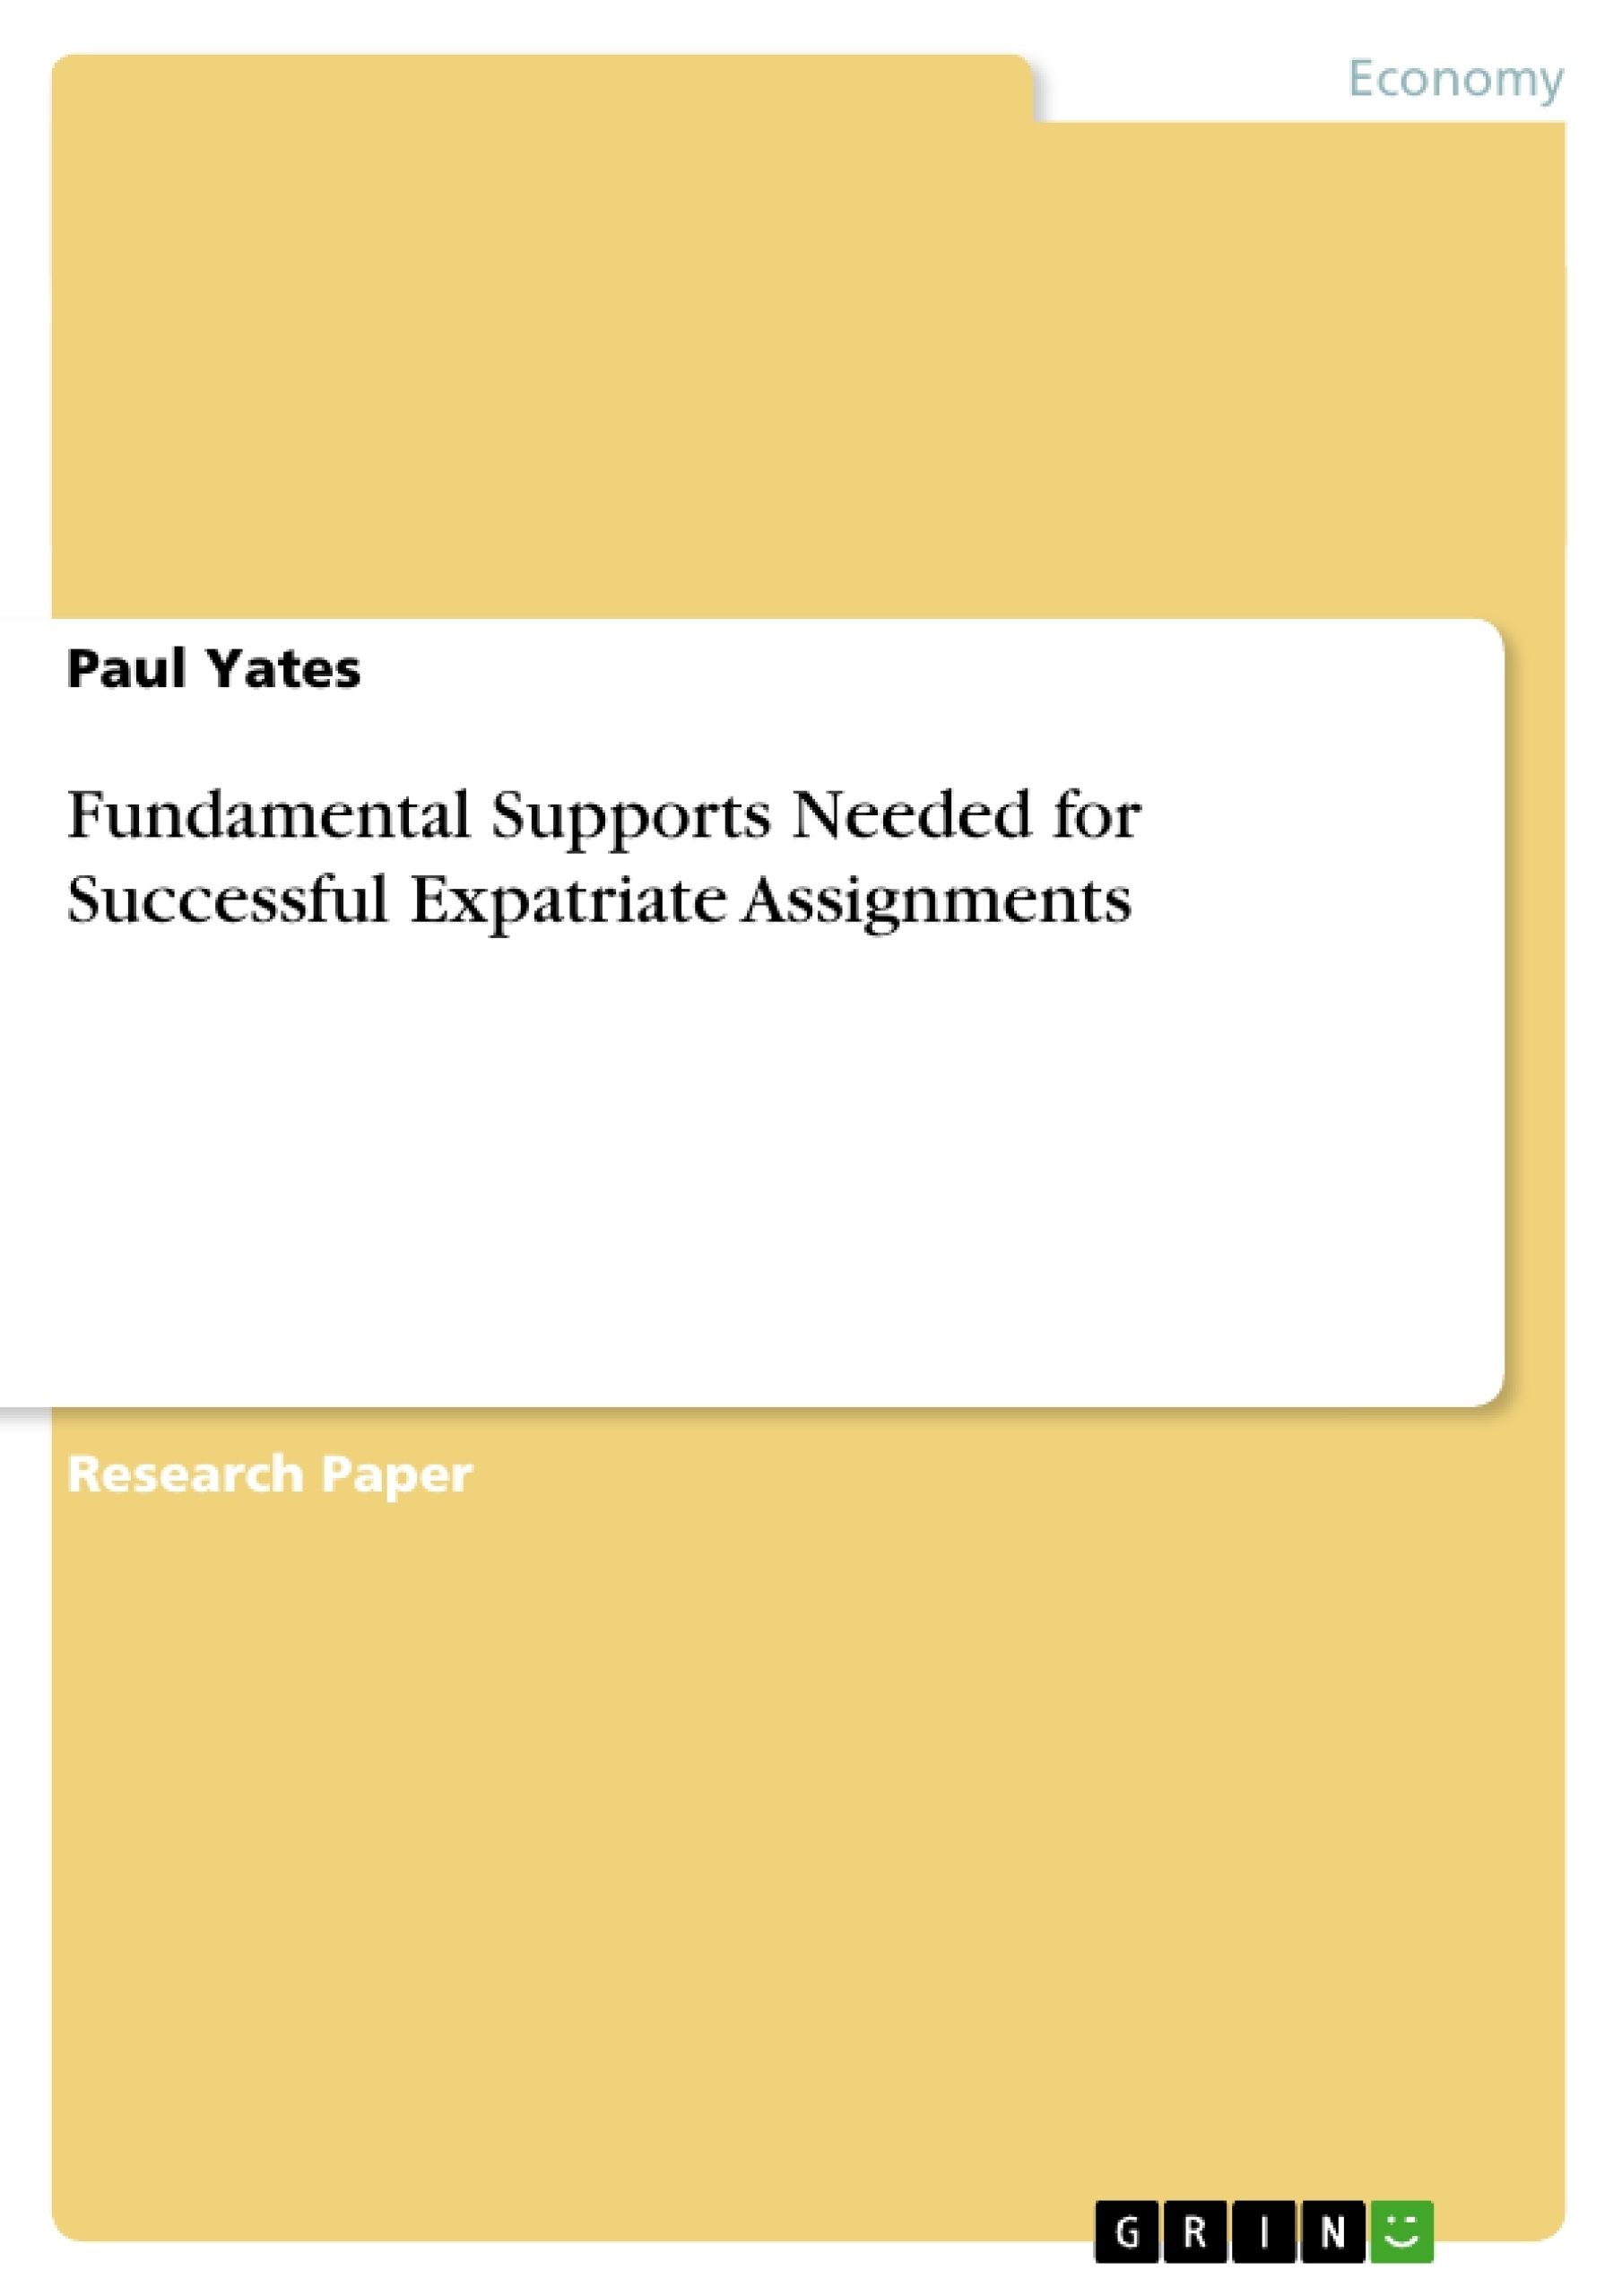 Title: Fundamental Supports Needed for Successful Expatriate Assignments